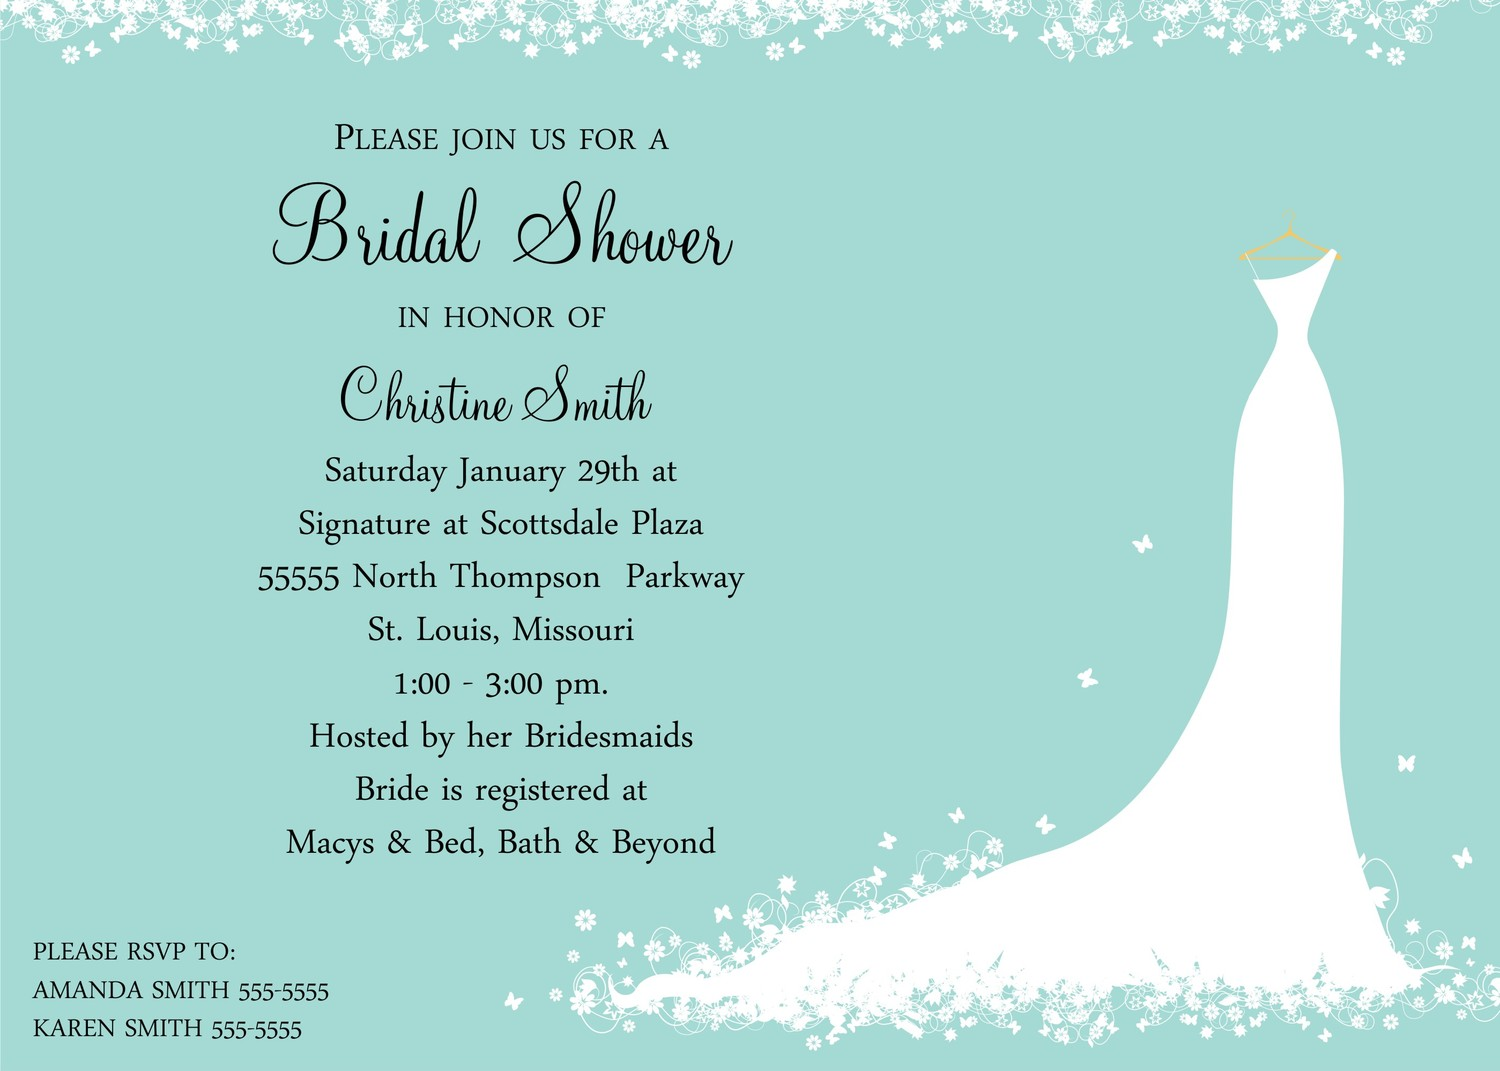 Bridal Shower Invitations Etiquette can inspire you to create best invitation template